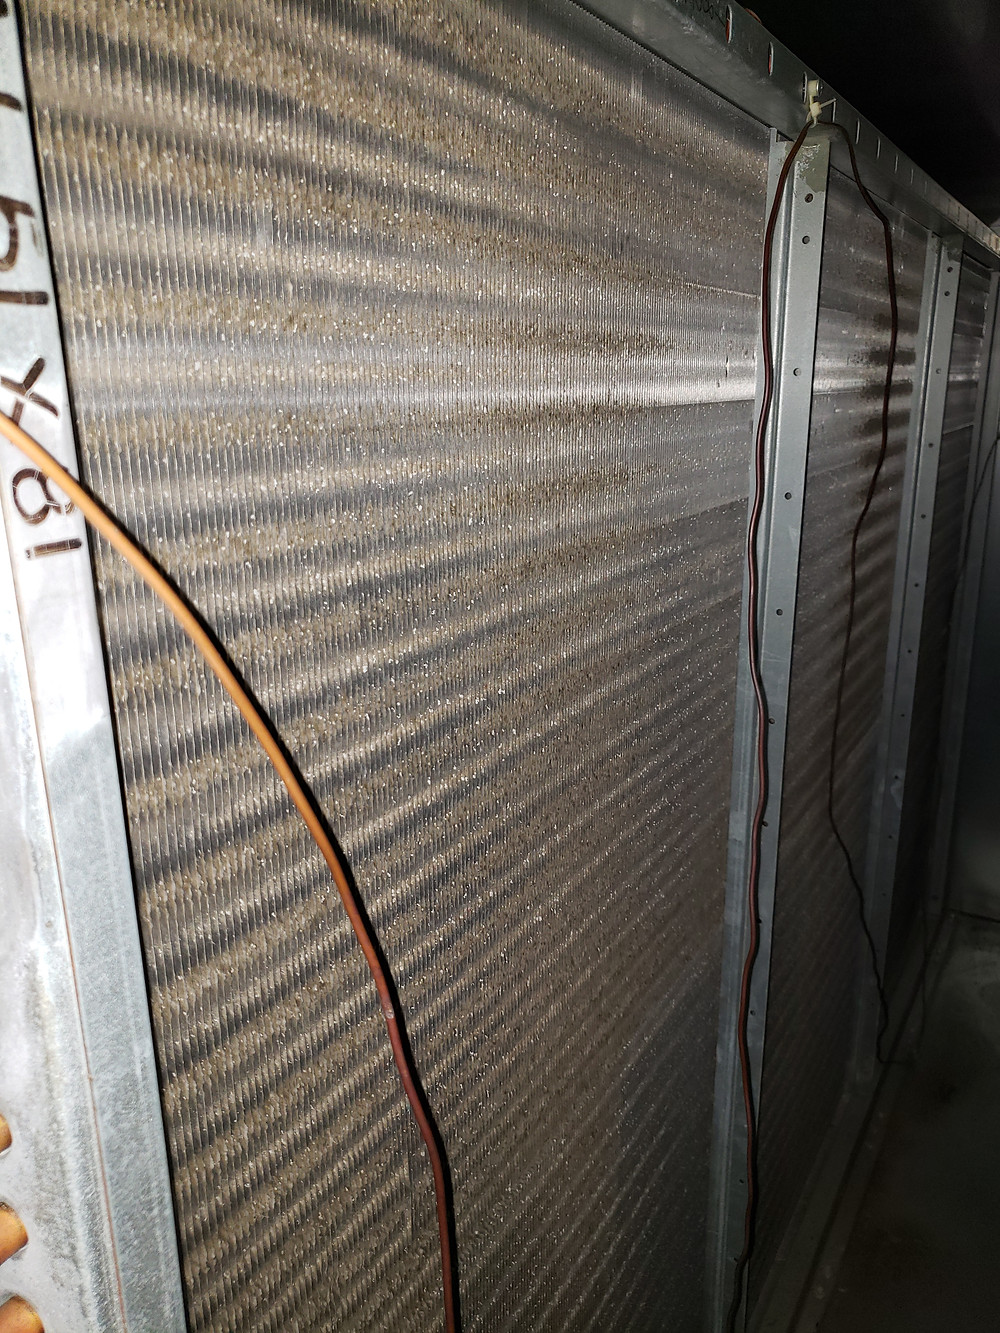 This is the downstream side of the cooling coil